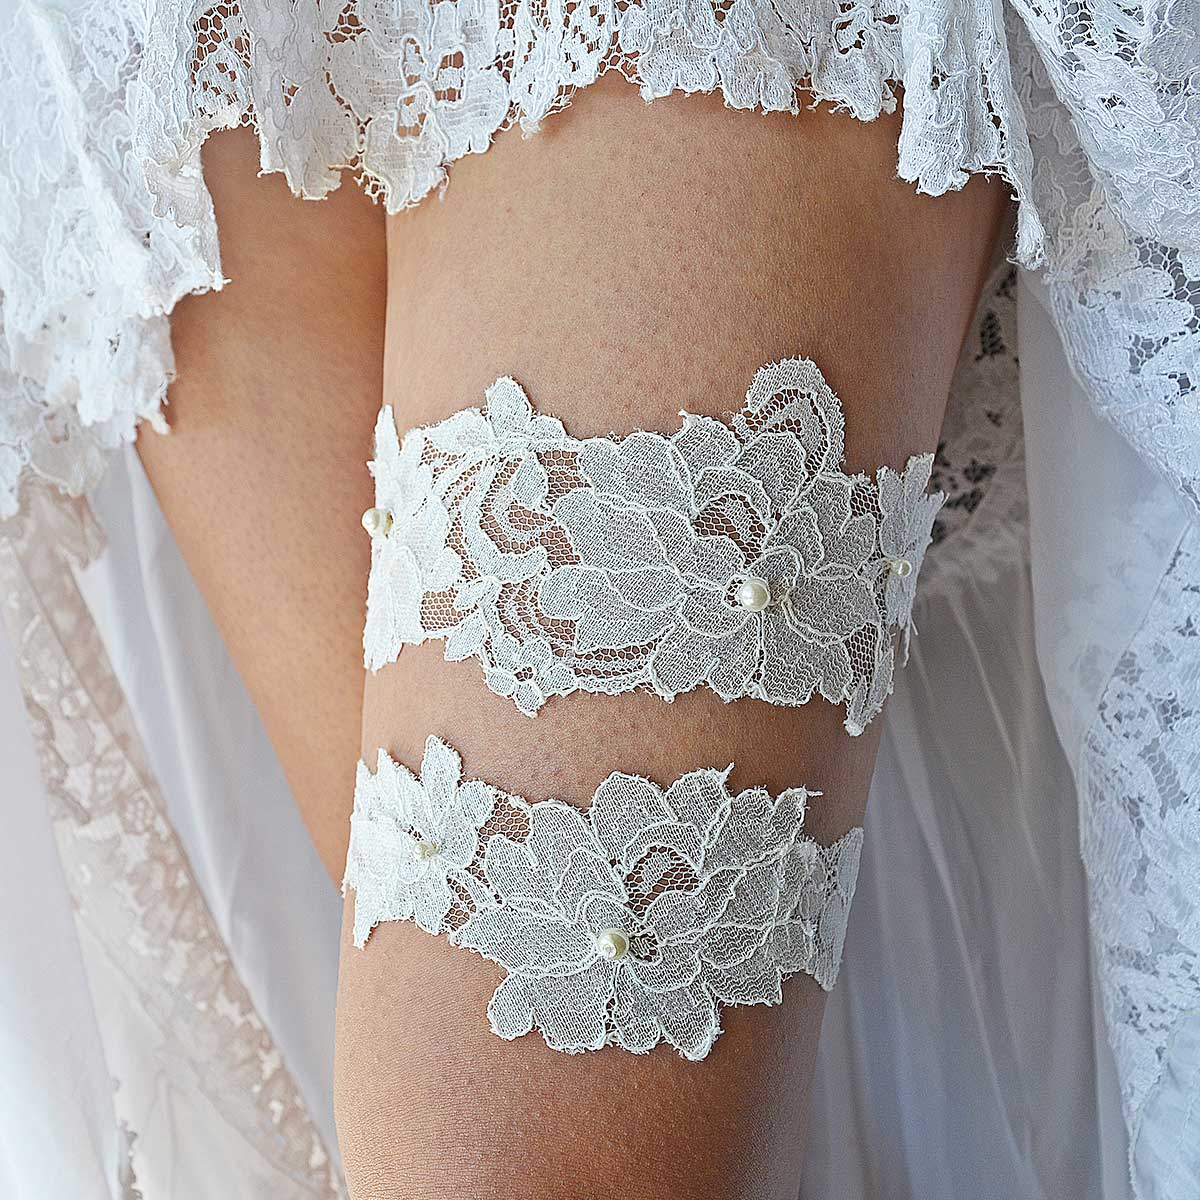 Handmade All Ivory Bridal Garter With Applique Lace & Pearls